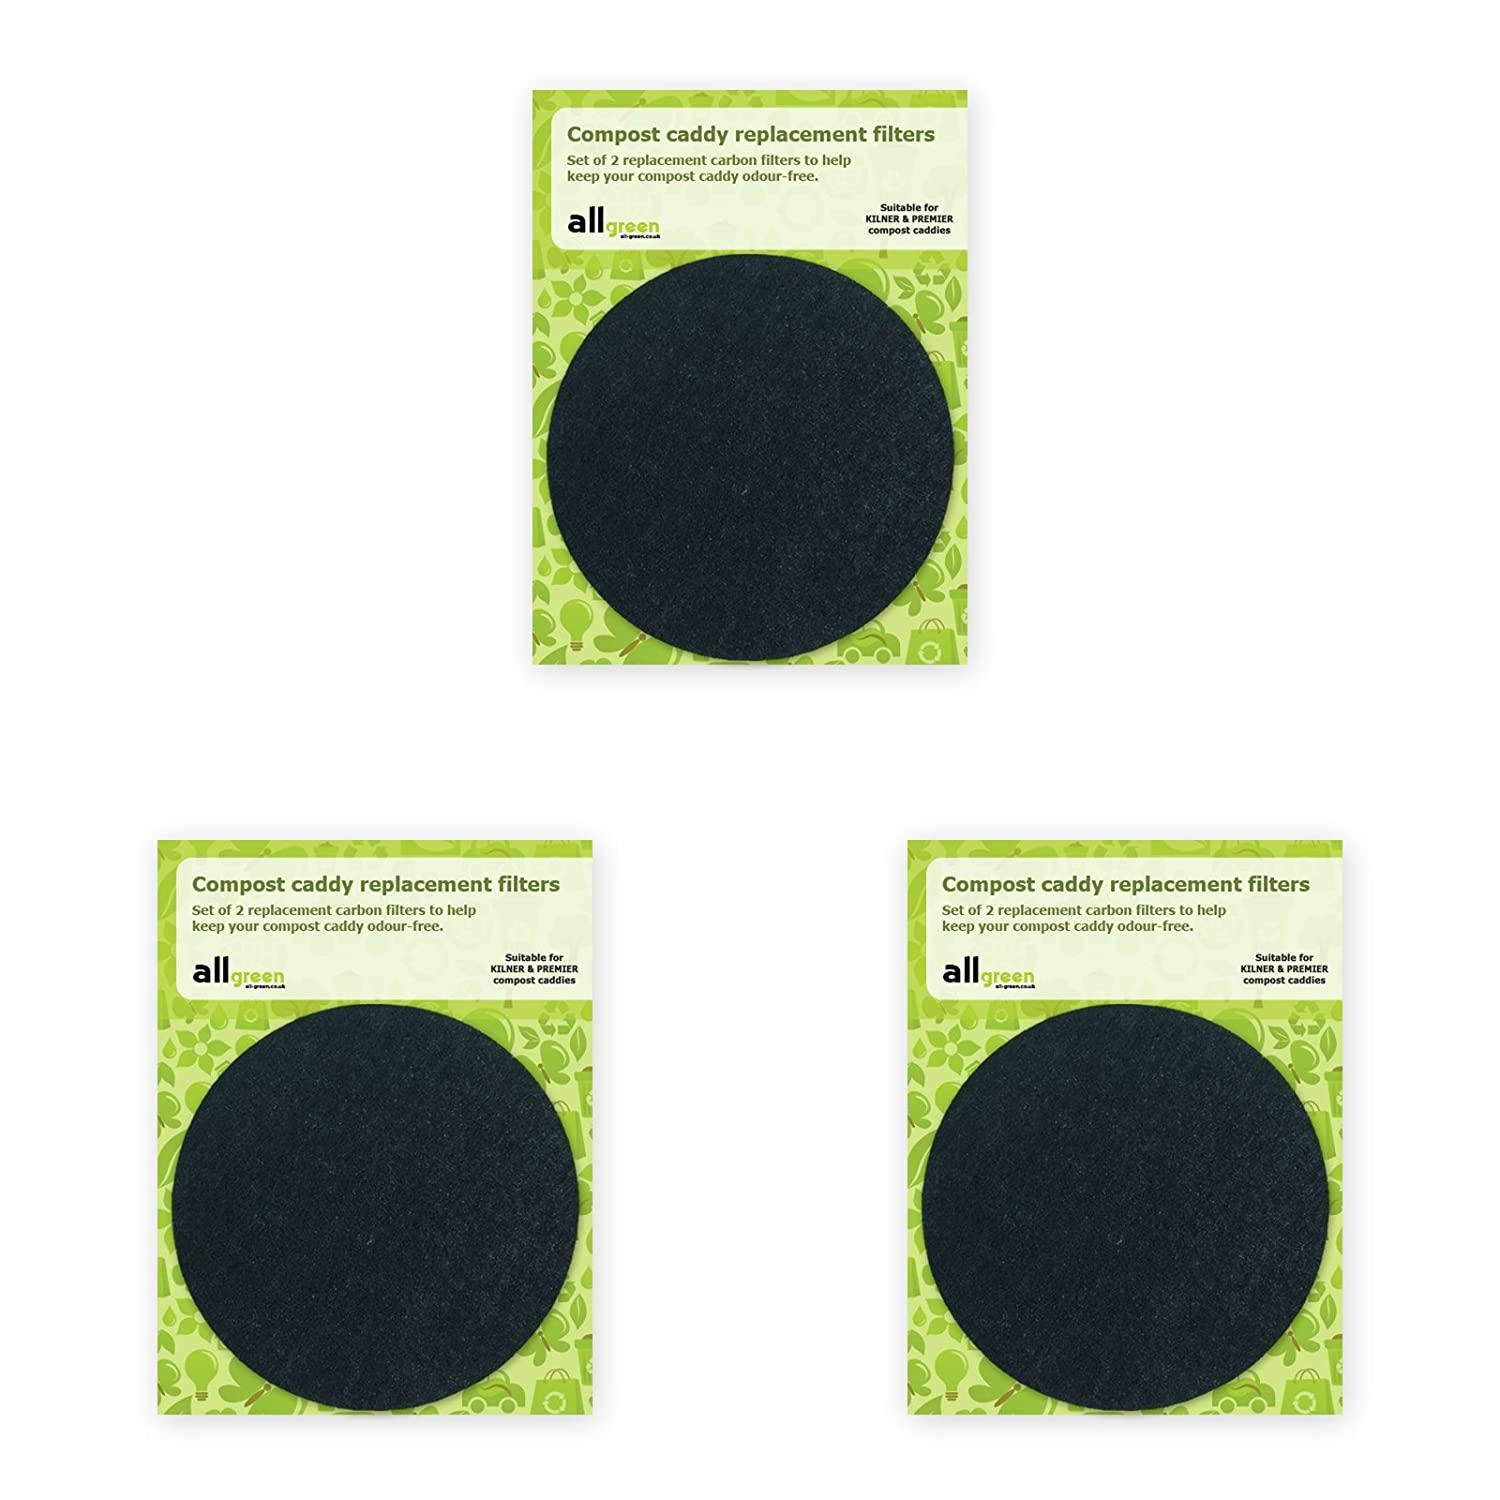 Compost Caddy Spare Filters - Suitable for the Kilner stainless steel & Premier filtered caddies - (3x 2pk - Total 6 filters) All-Green